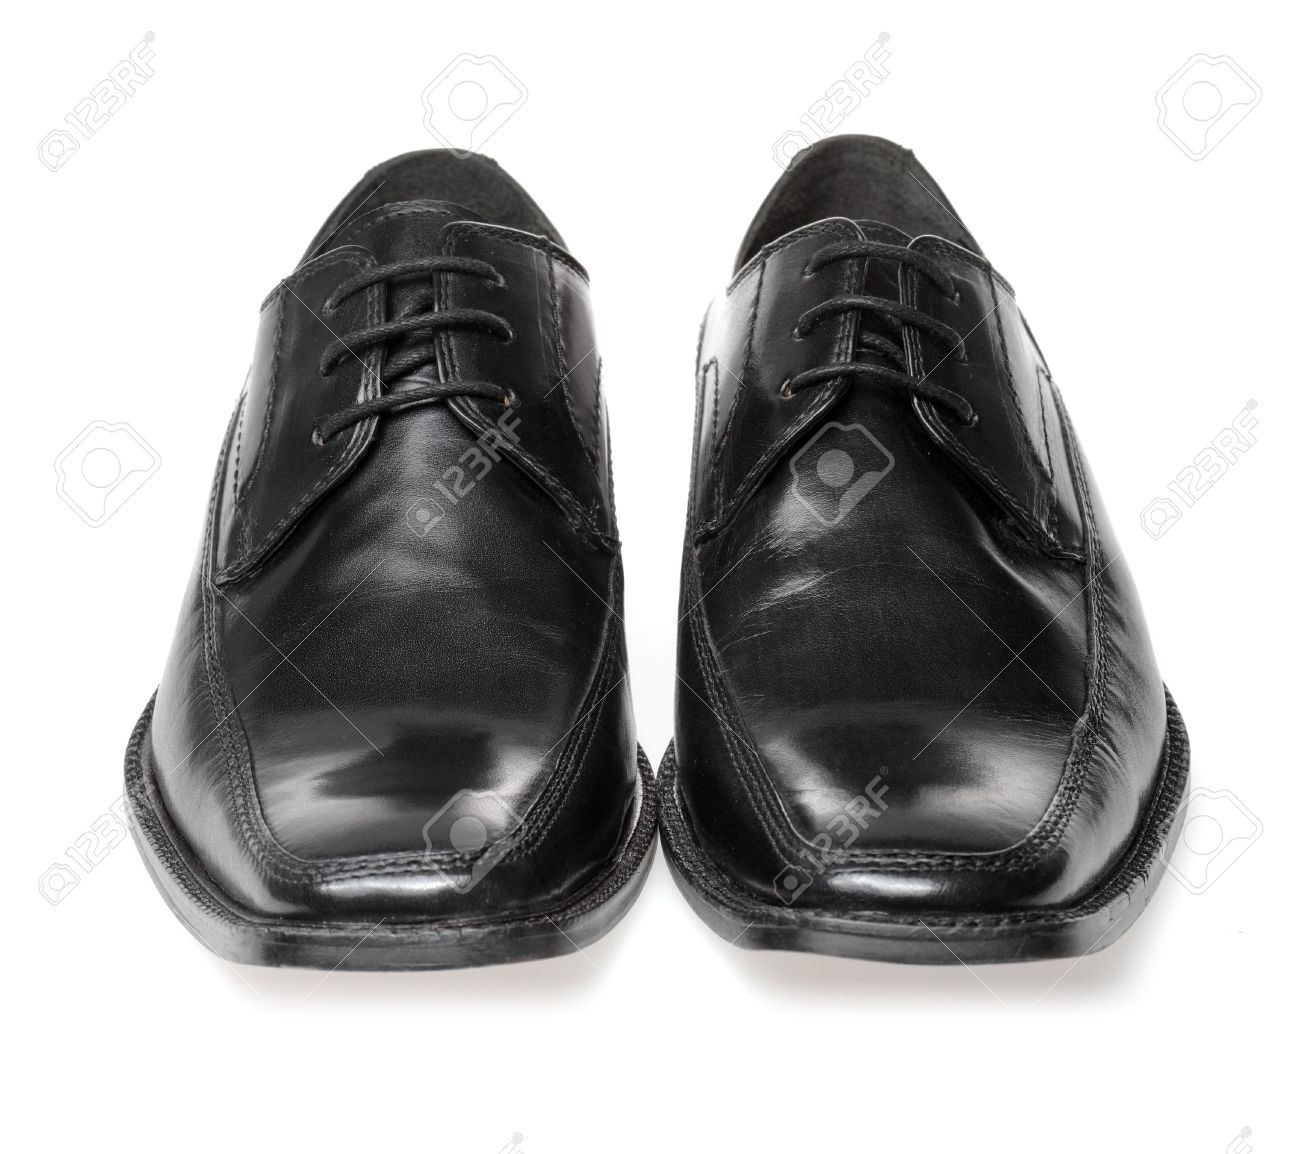 Men's Black Leather Dress Shoes Stock Photo, Picture And Royalty ...